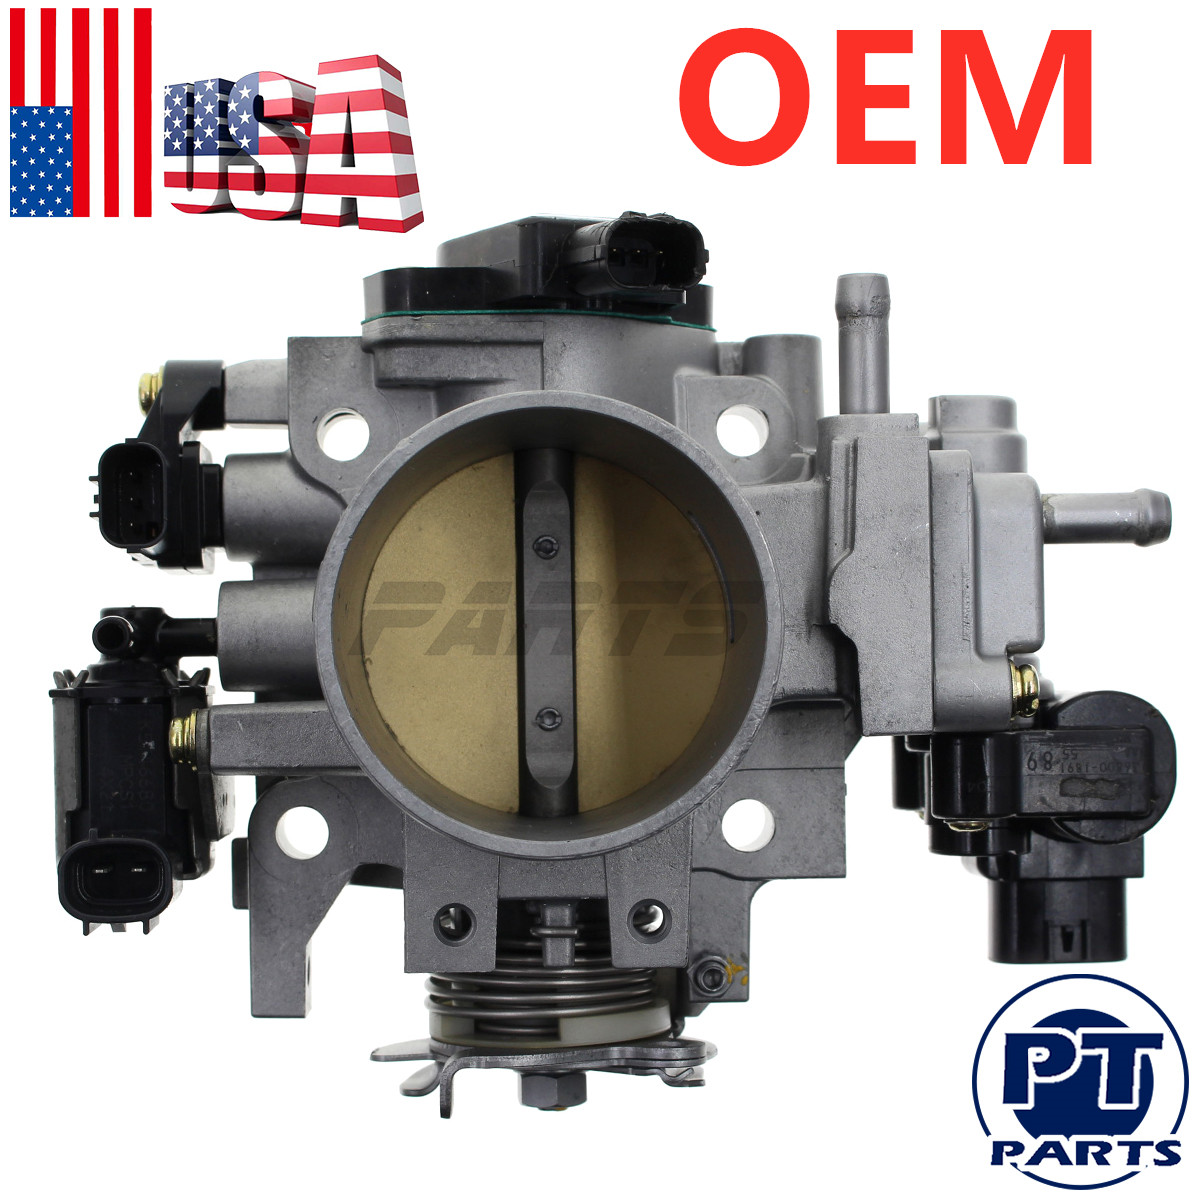 GENUINE Throttle Body 16400-PPA-A11 For Honda CR-V With Cruise Control 2002-2005